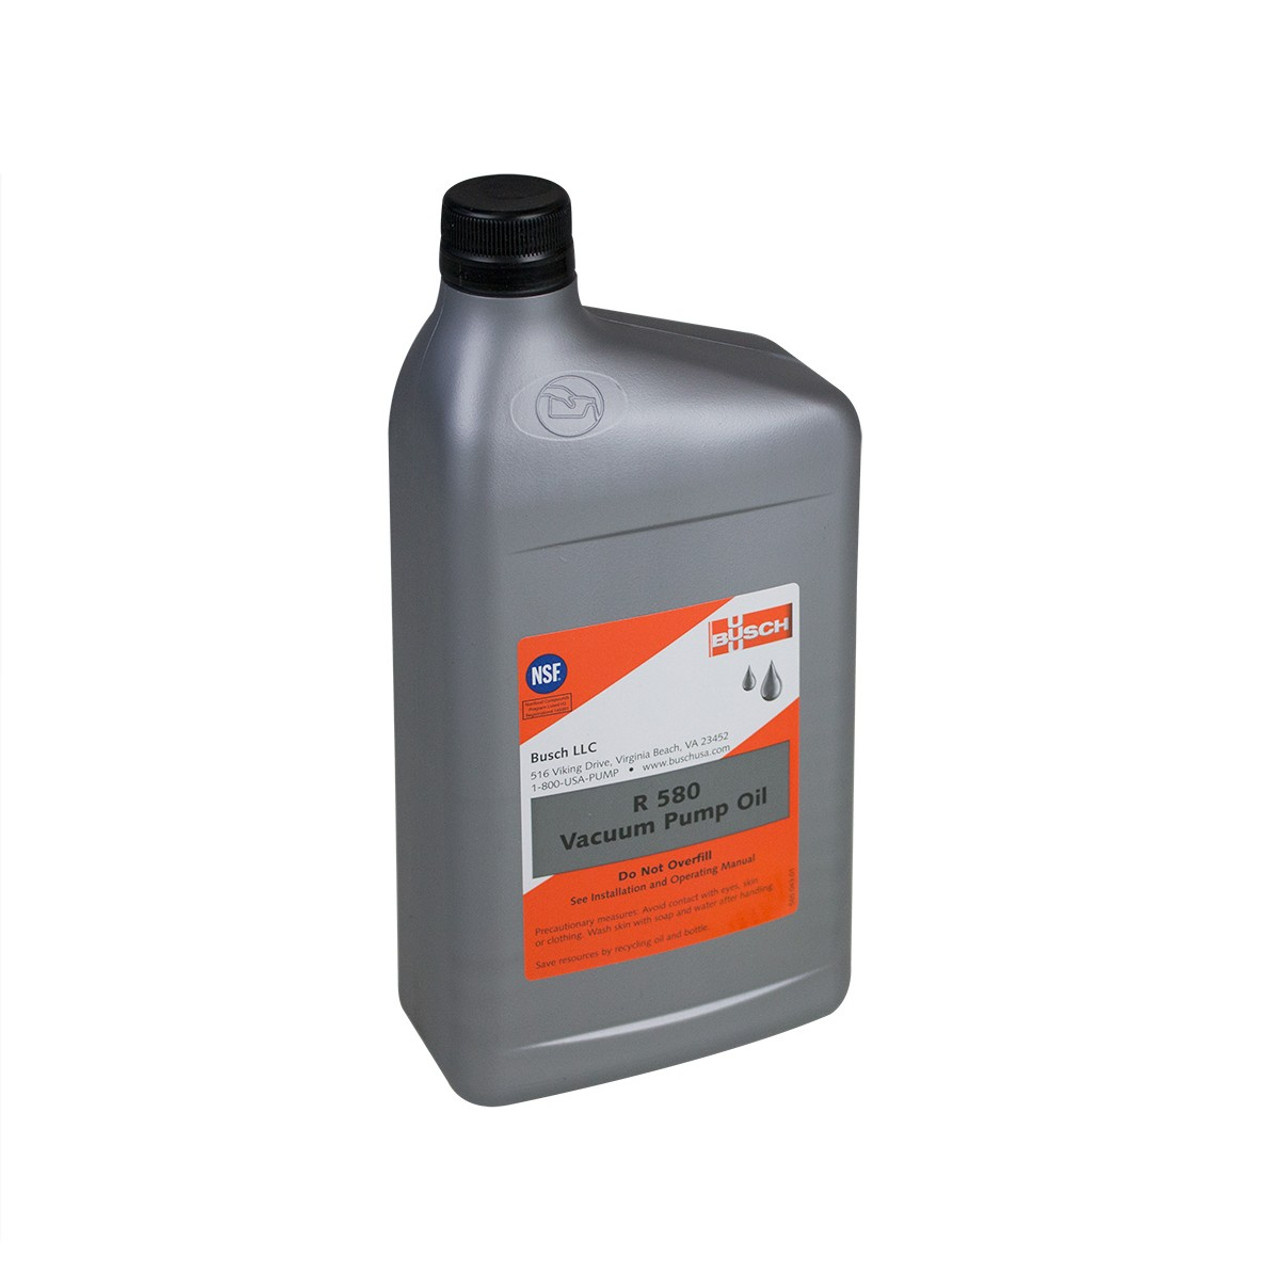 Busch 0831.908.403 Oil, R-580, 1 Quart Vacuum Pump Oil